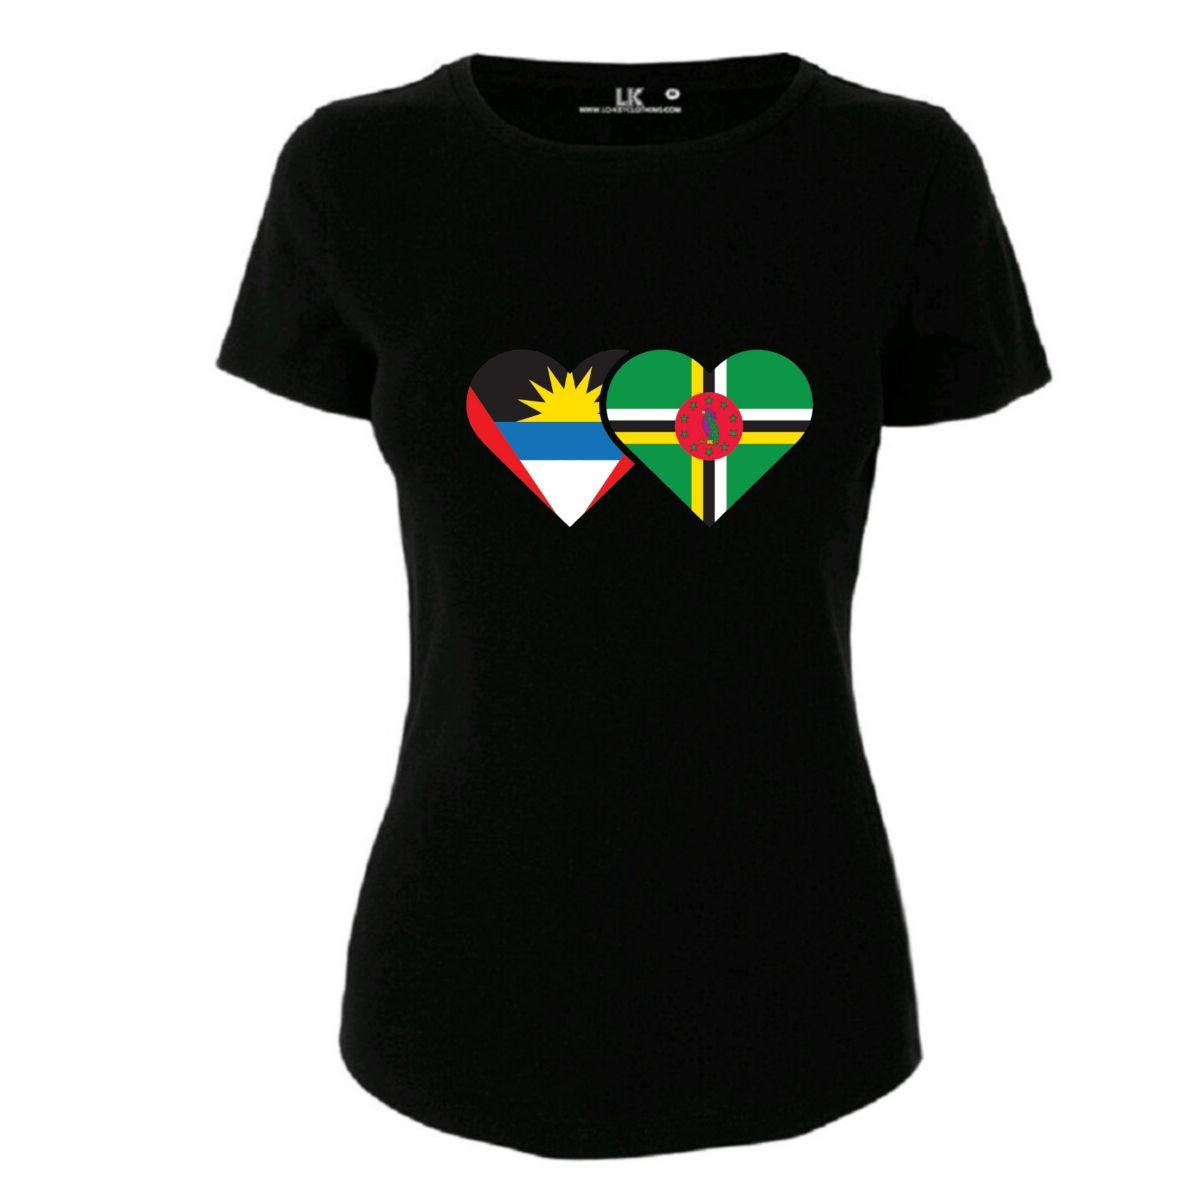 Ladies Antigua and Barbuda and Dominica Heart Flag T/Shirt